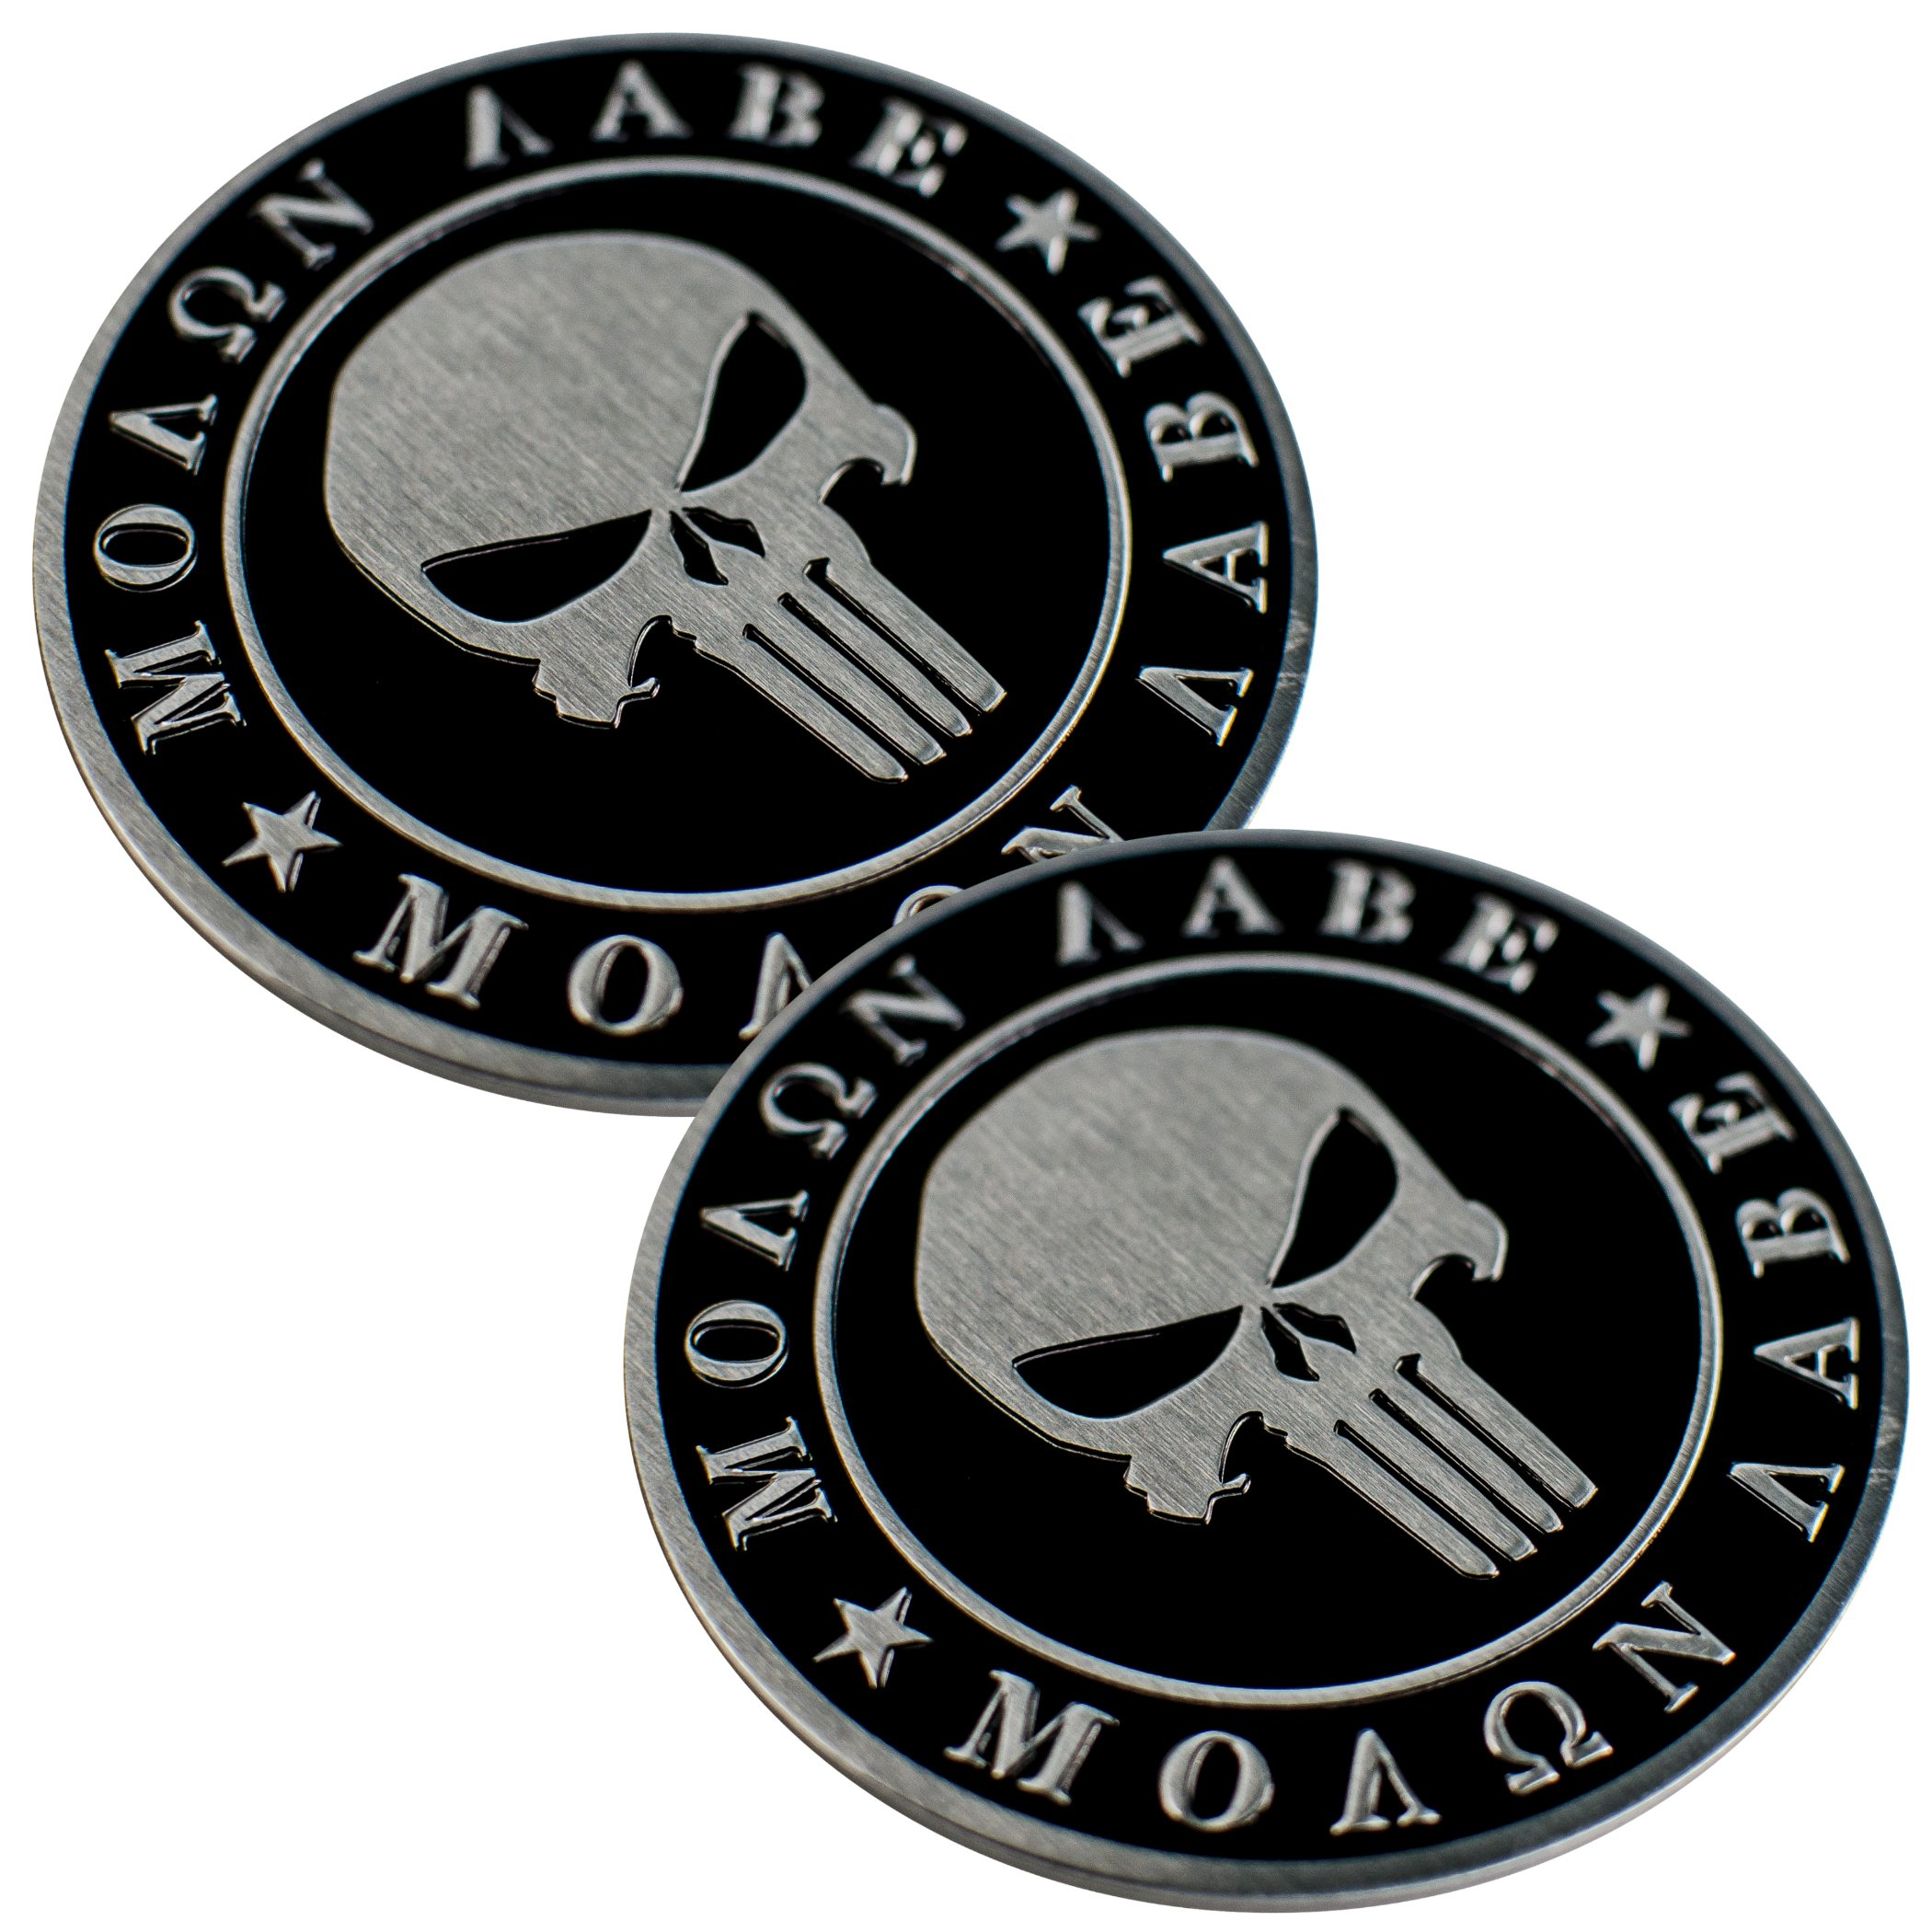 2 Pack Motorcycle Emblem 2nd Amendment Molon Labe Sticker Decal DOME SHAPE